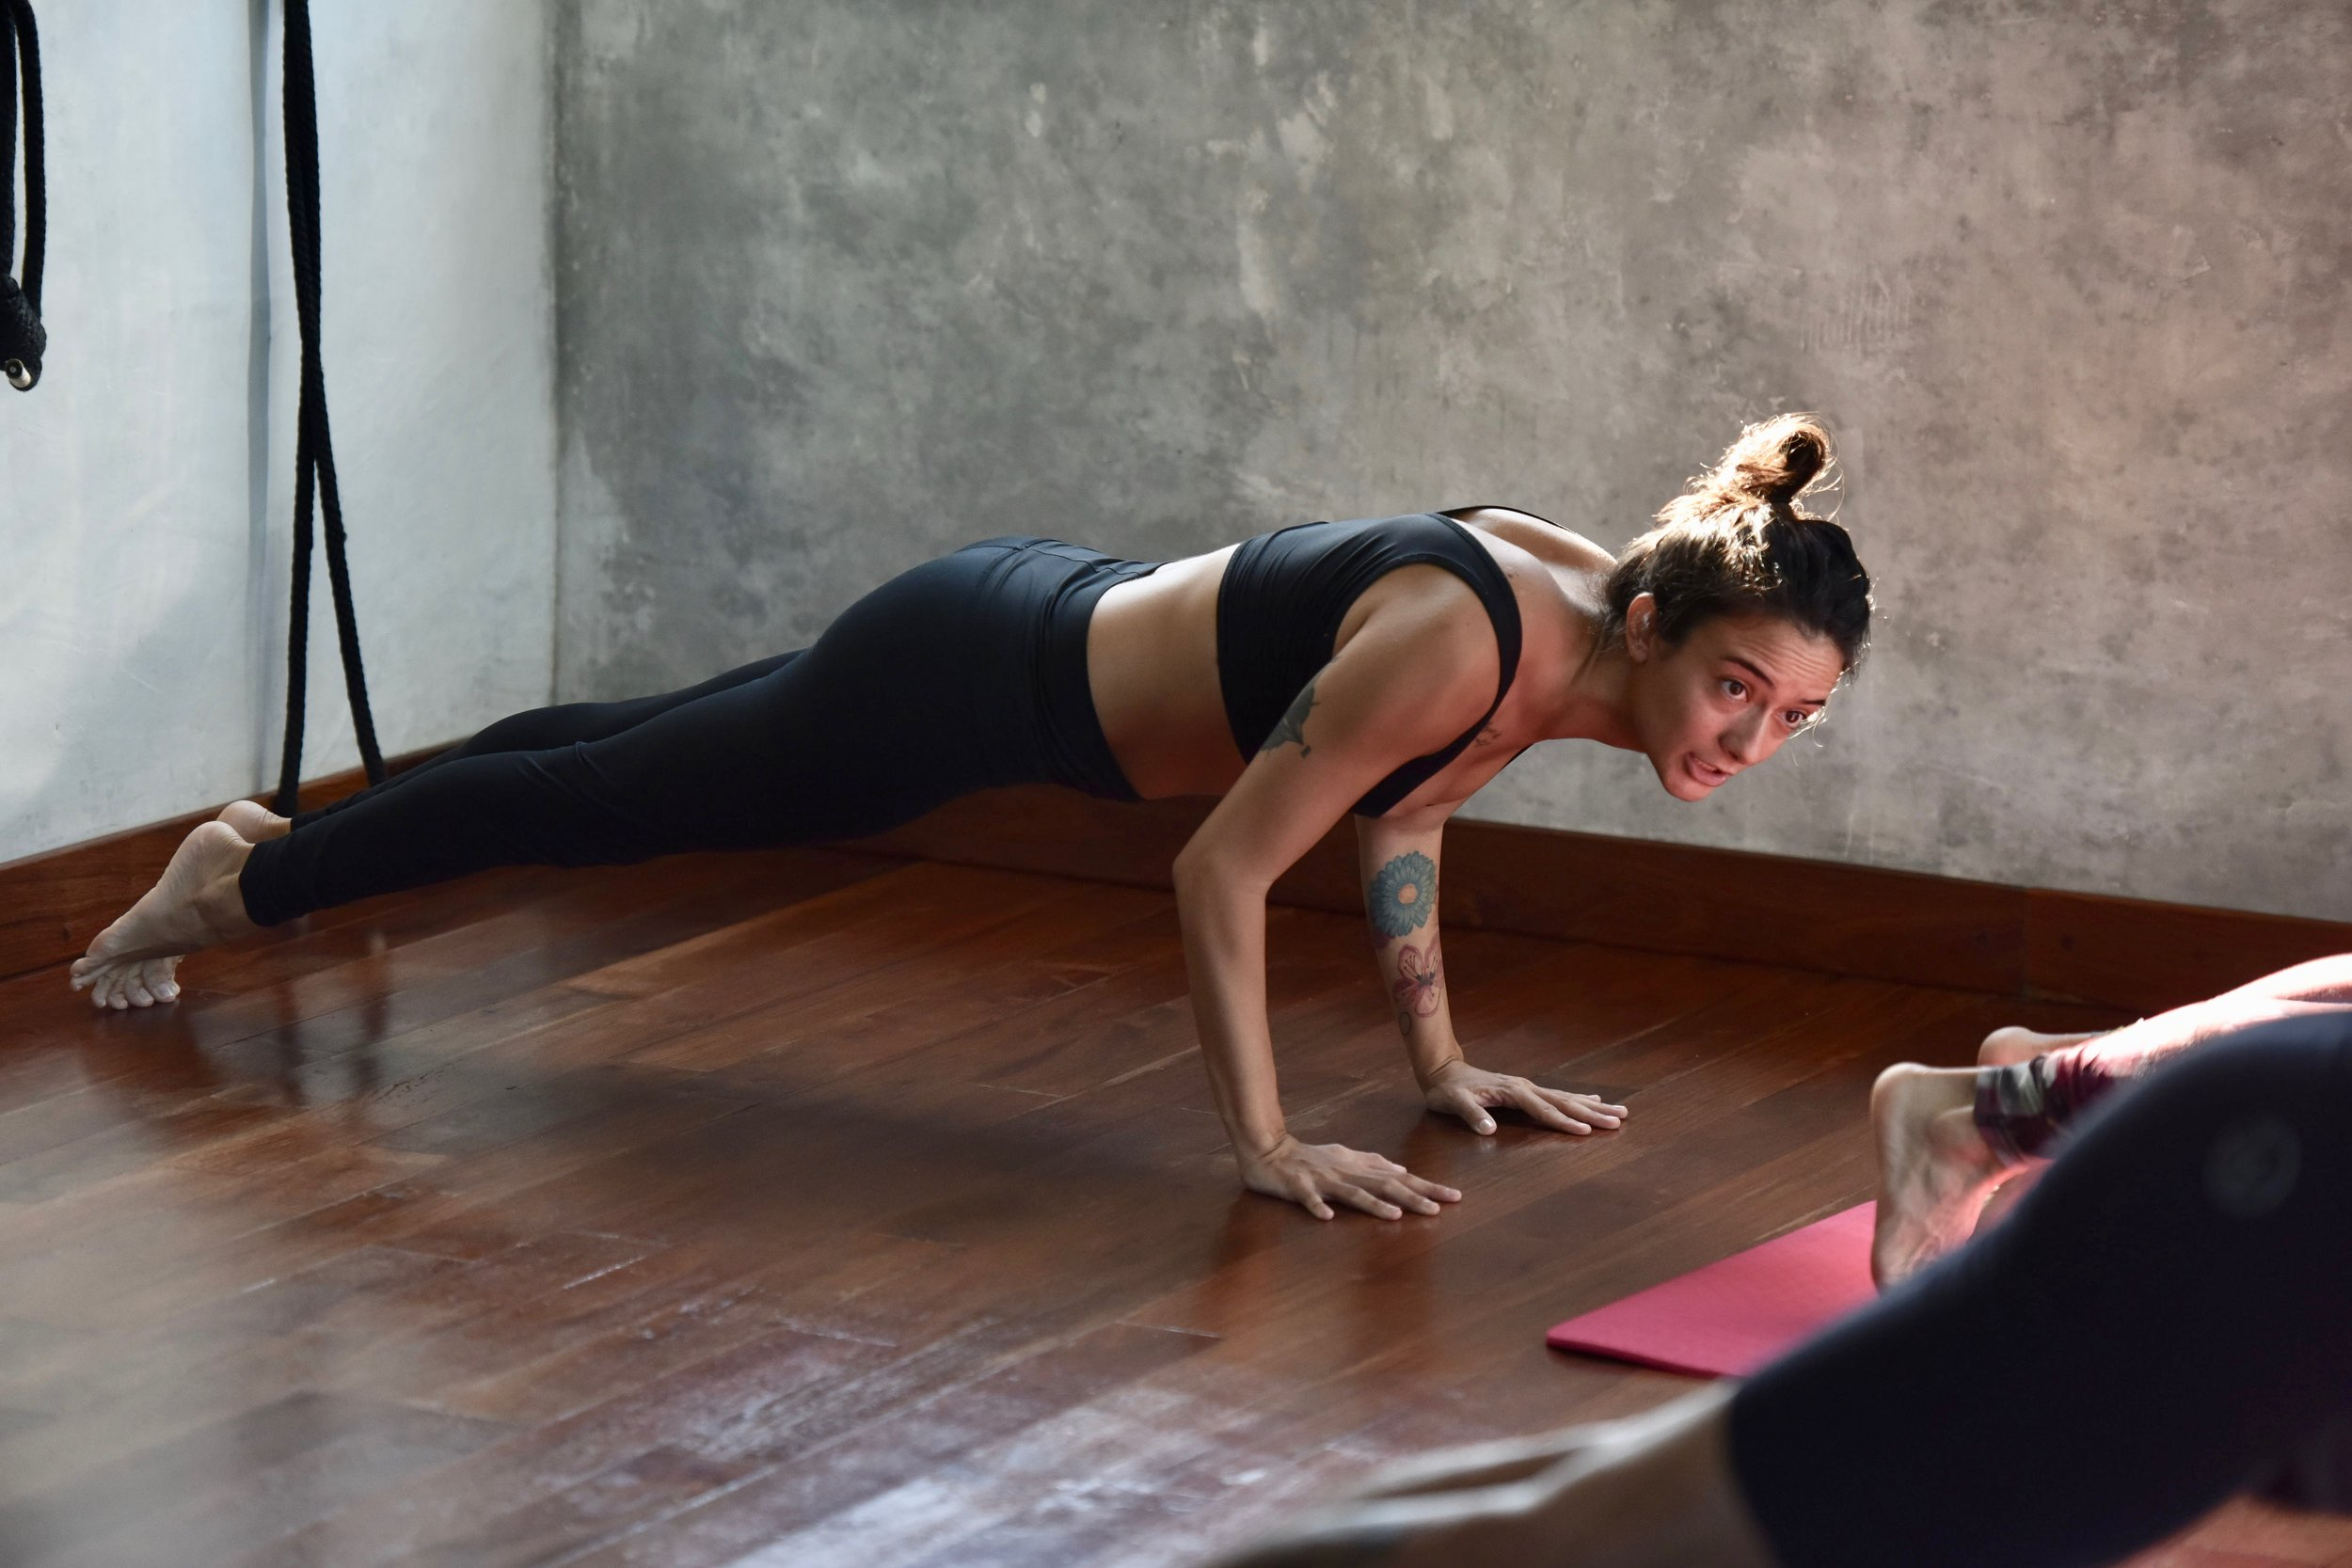 "Mariana   Mariana is from Guadalajara, Mexico. Through constant practice, Mariana witnessed the internal and external changes yoga brought about. Subsequently, she decided to share the yoga practice as a teacher. She studied yoga in Playa del Carmen and received her certification in Vinyasa Flow from Alan Montano in 2016. ""Yoga changed my life and helped me cure physical and emotional problems. It was also crucial in allowing me to respect and accept myself"". Mariana shows her students how yoga helps us live less accelerated lives and be in the moment. Balancing postures are her favorites both in her personal practice and in her teaching because ""you can see yourself and your students build confidence, something that can improve each and every person's life. "" Mariana teaches Vinyasa Flow and the full moon meditation at Tribal."